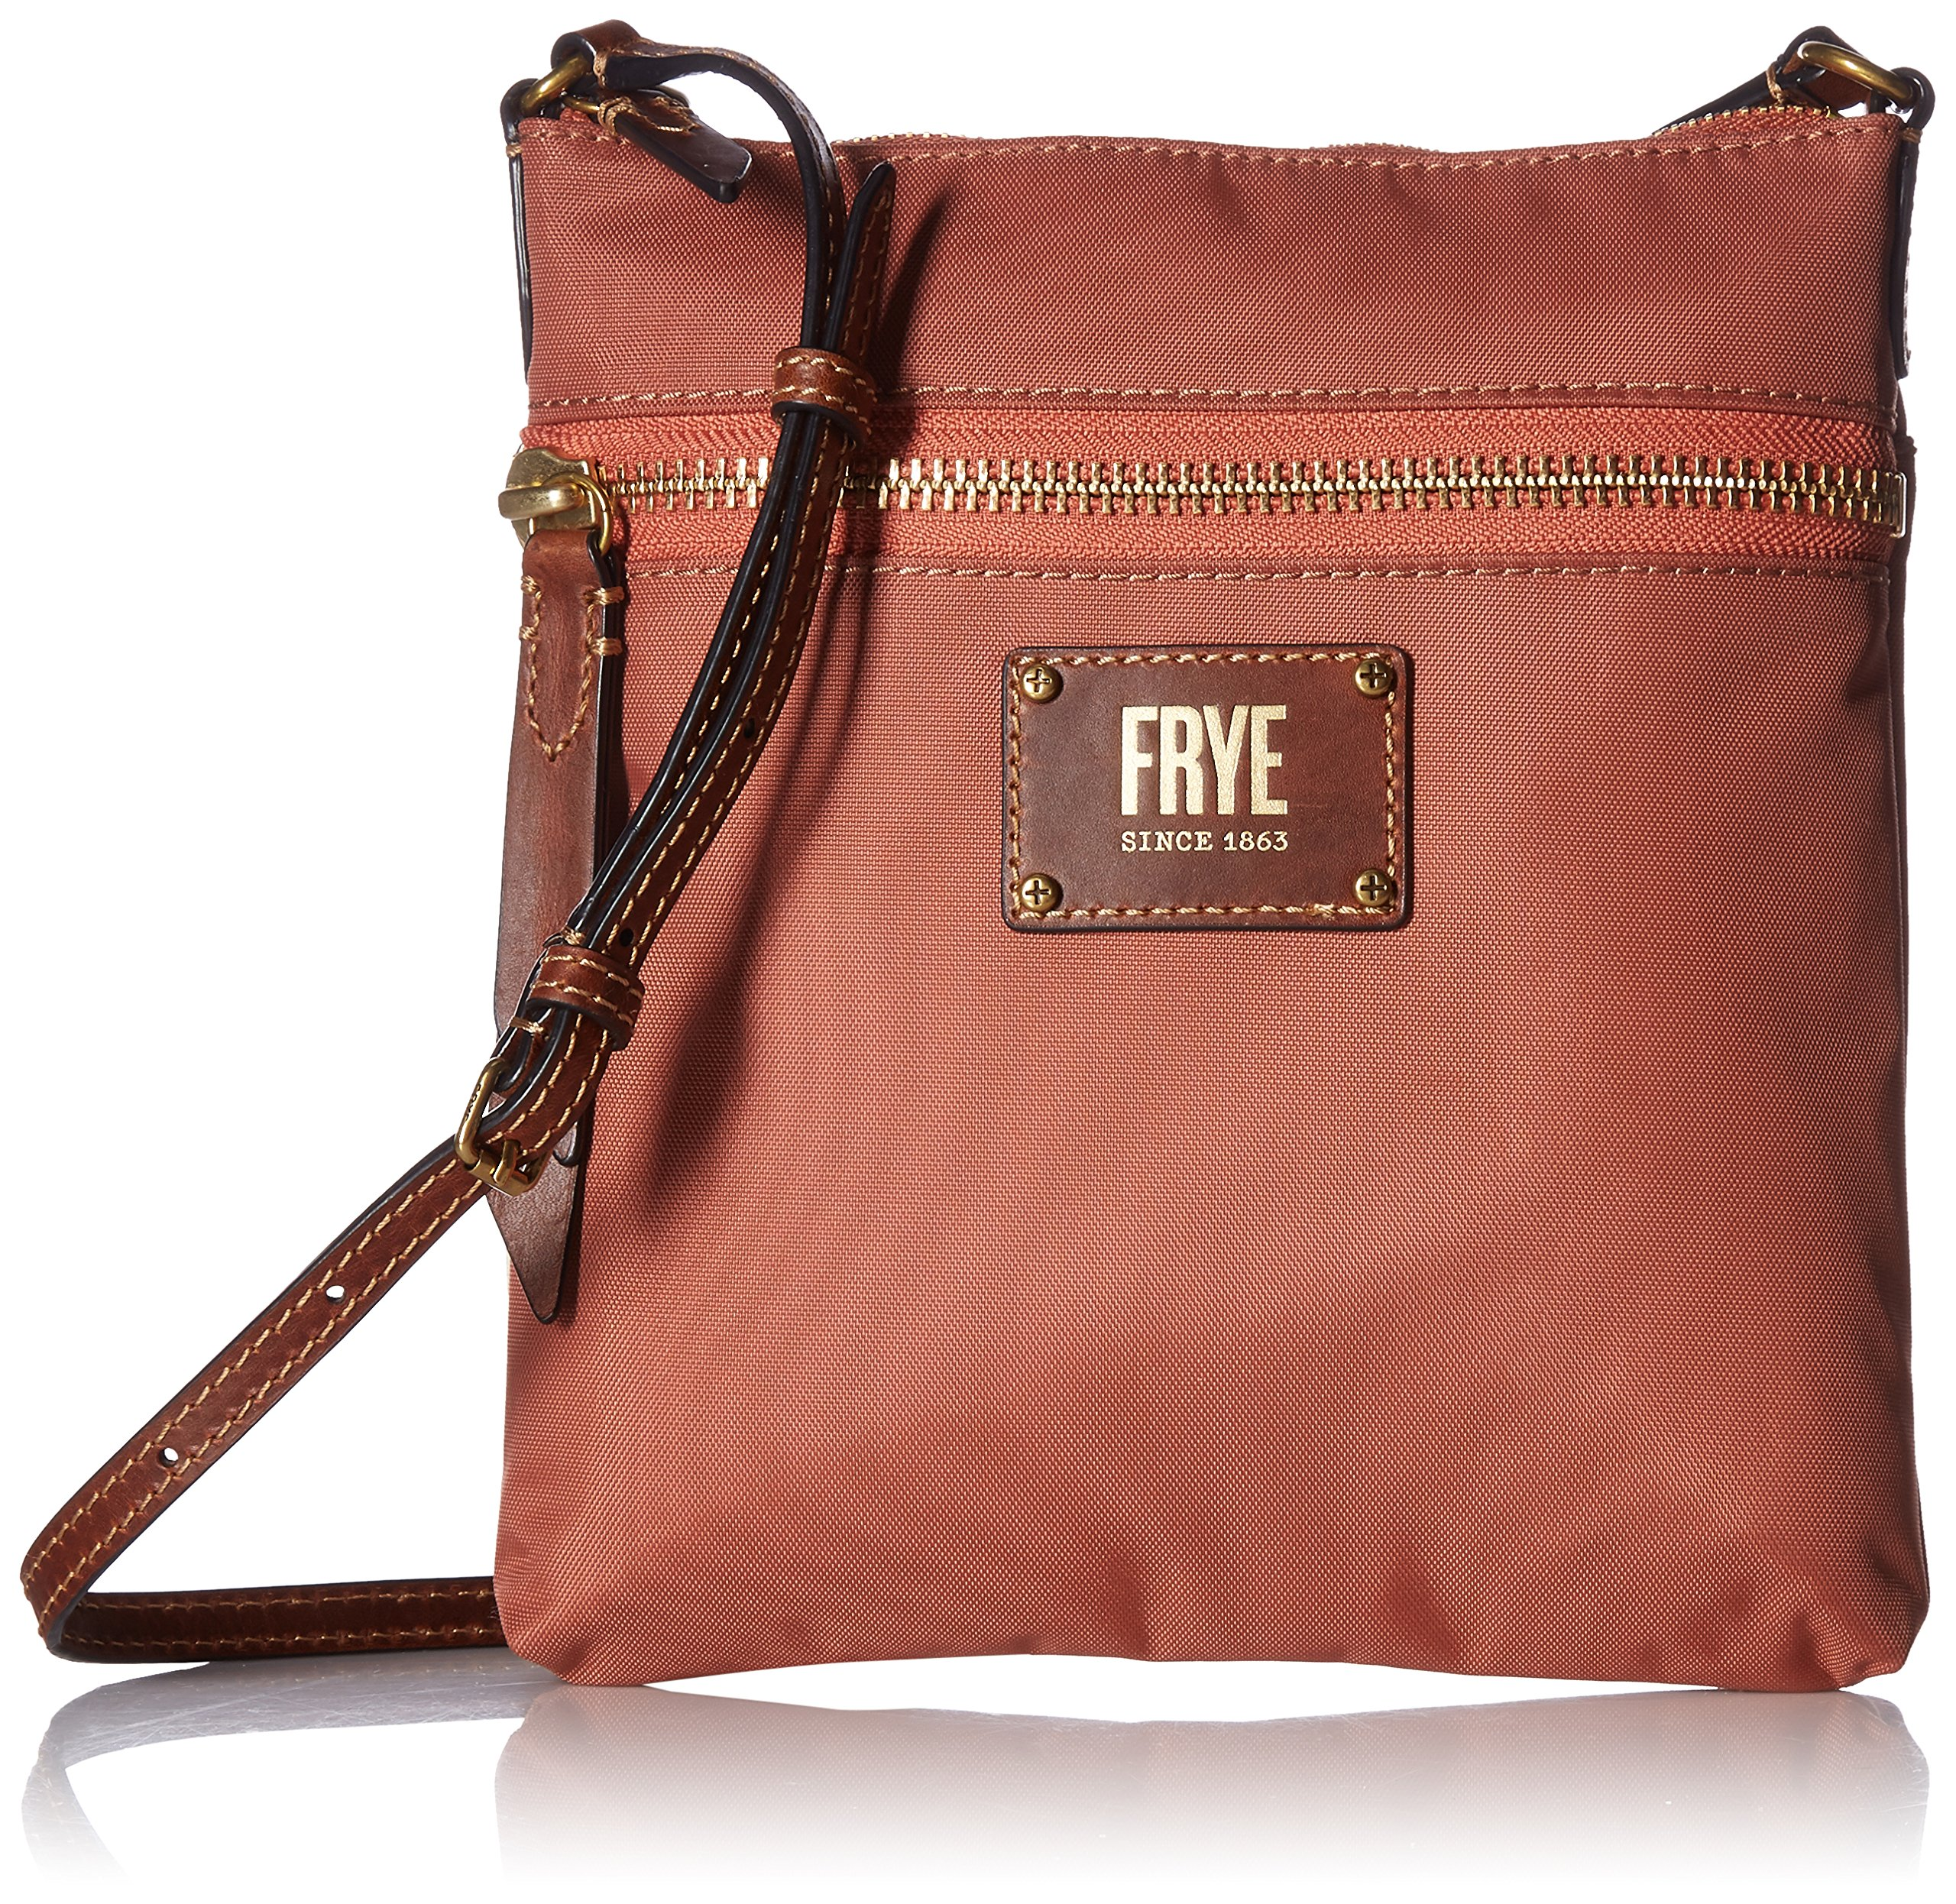 Frye Ivy Zip Crossbody Nylon Handbag